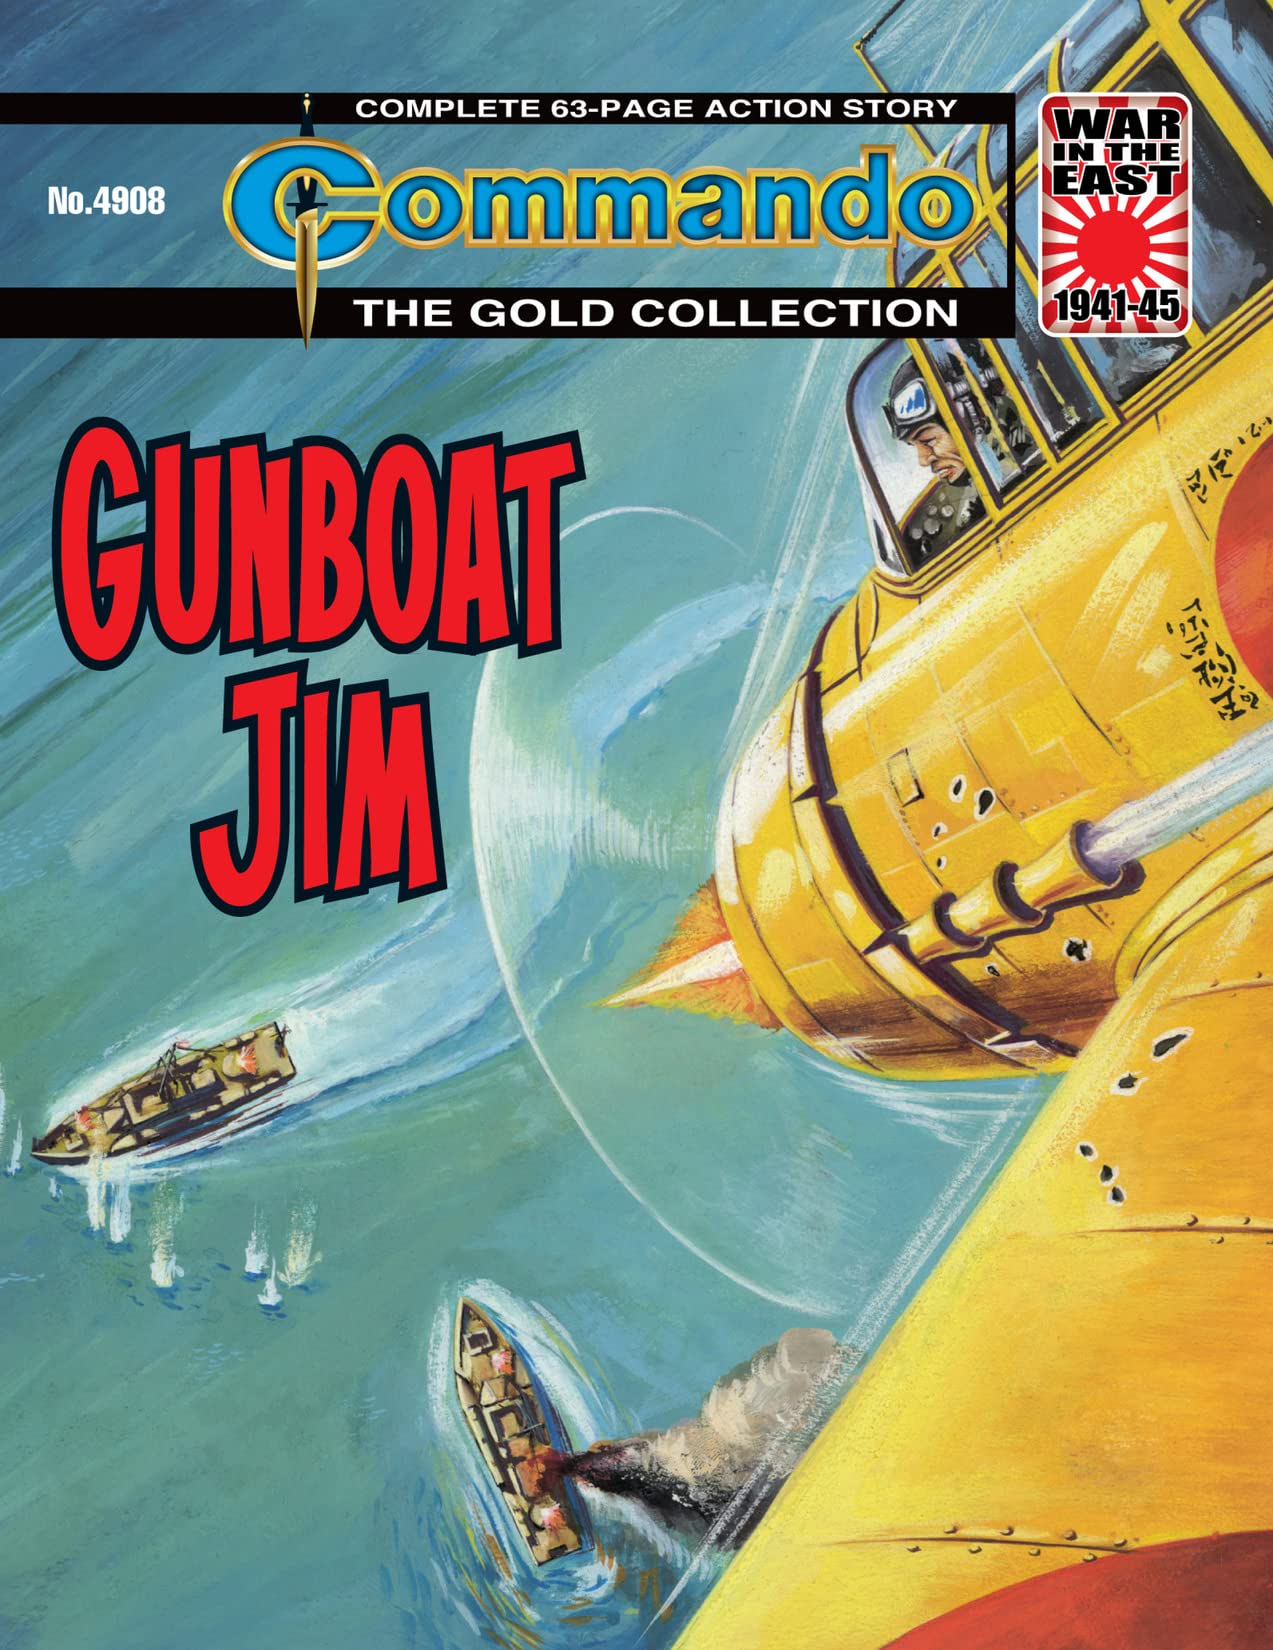 Commando #4908: Gunboat Jim